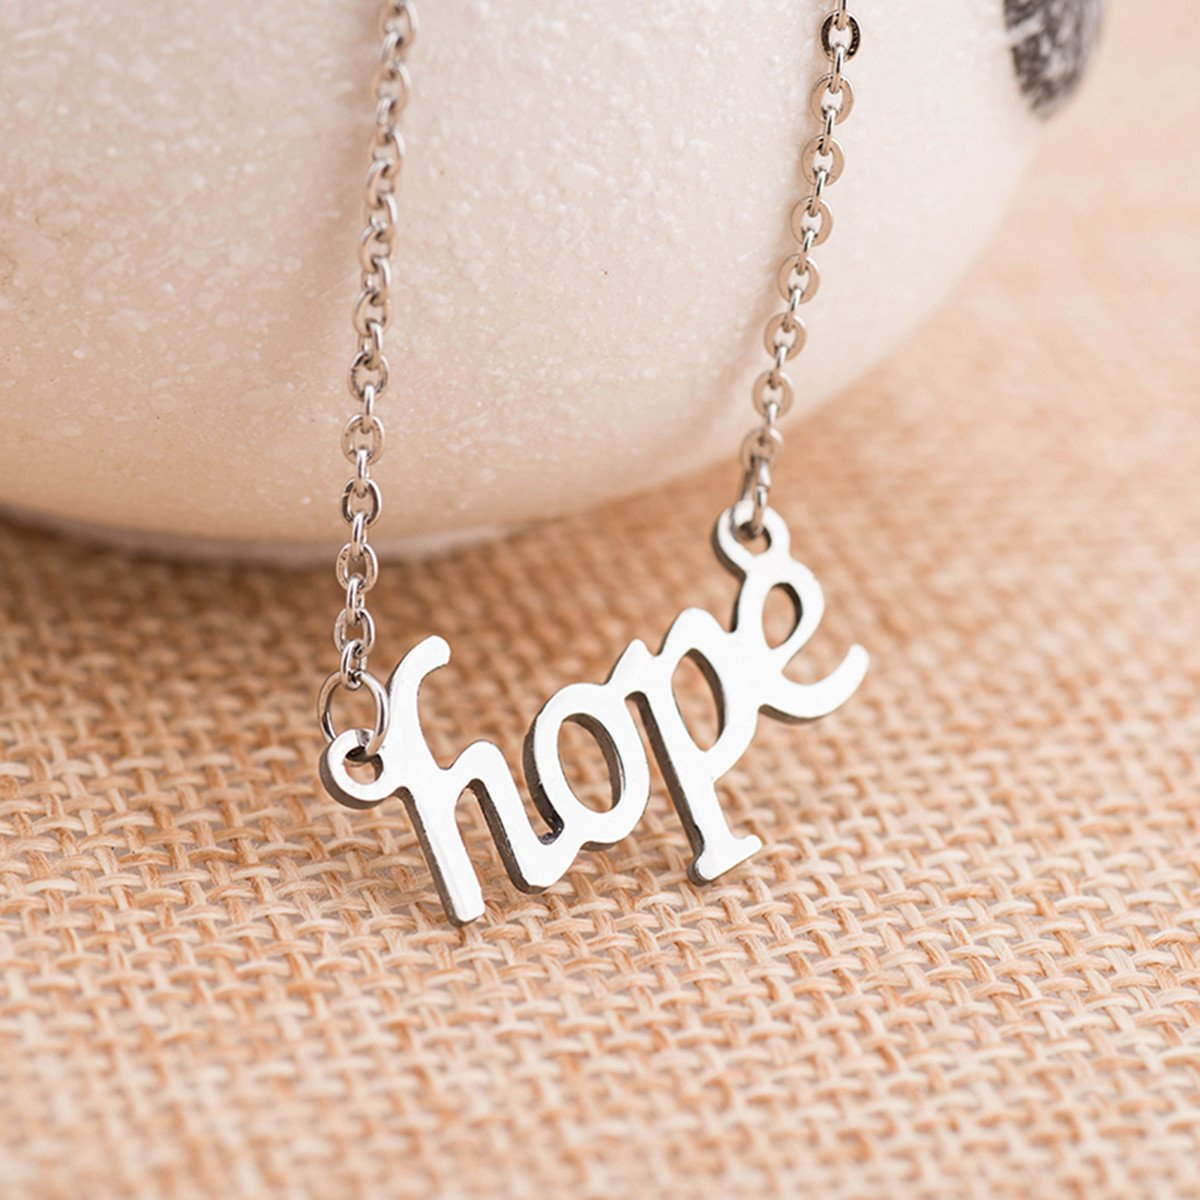 A1giftshop jewelry earrings for graduation necklace Smile and Hope Pendant Necklace